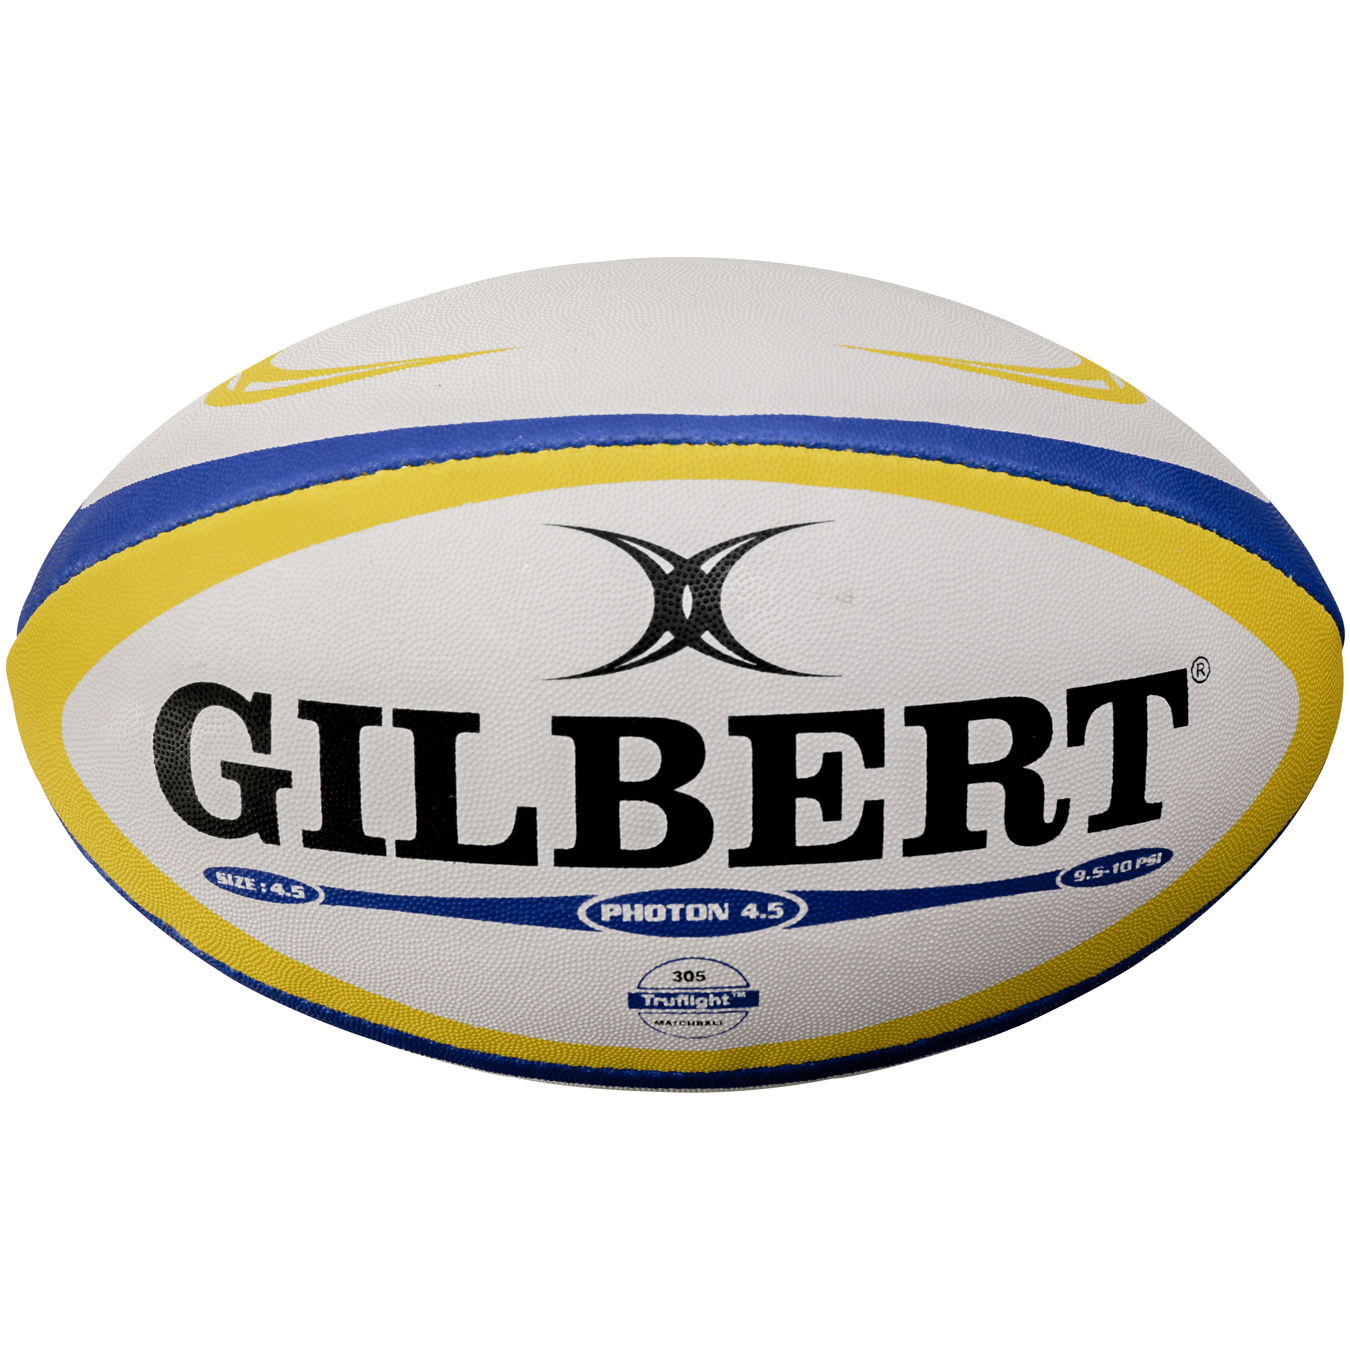 Womans Vision Match Ball